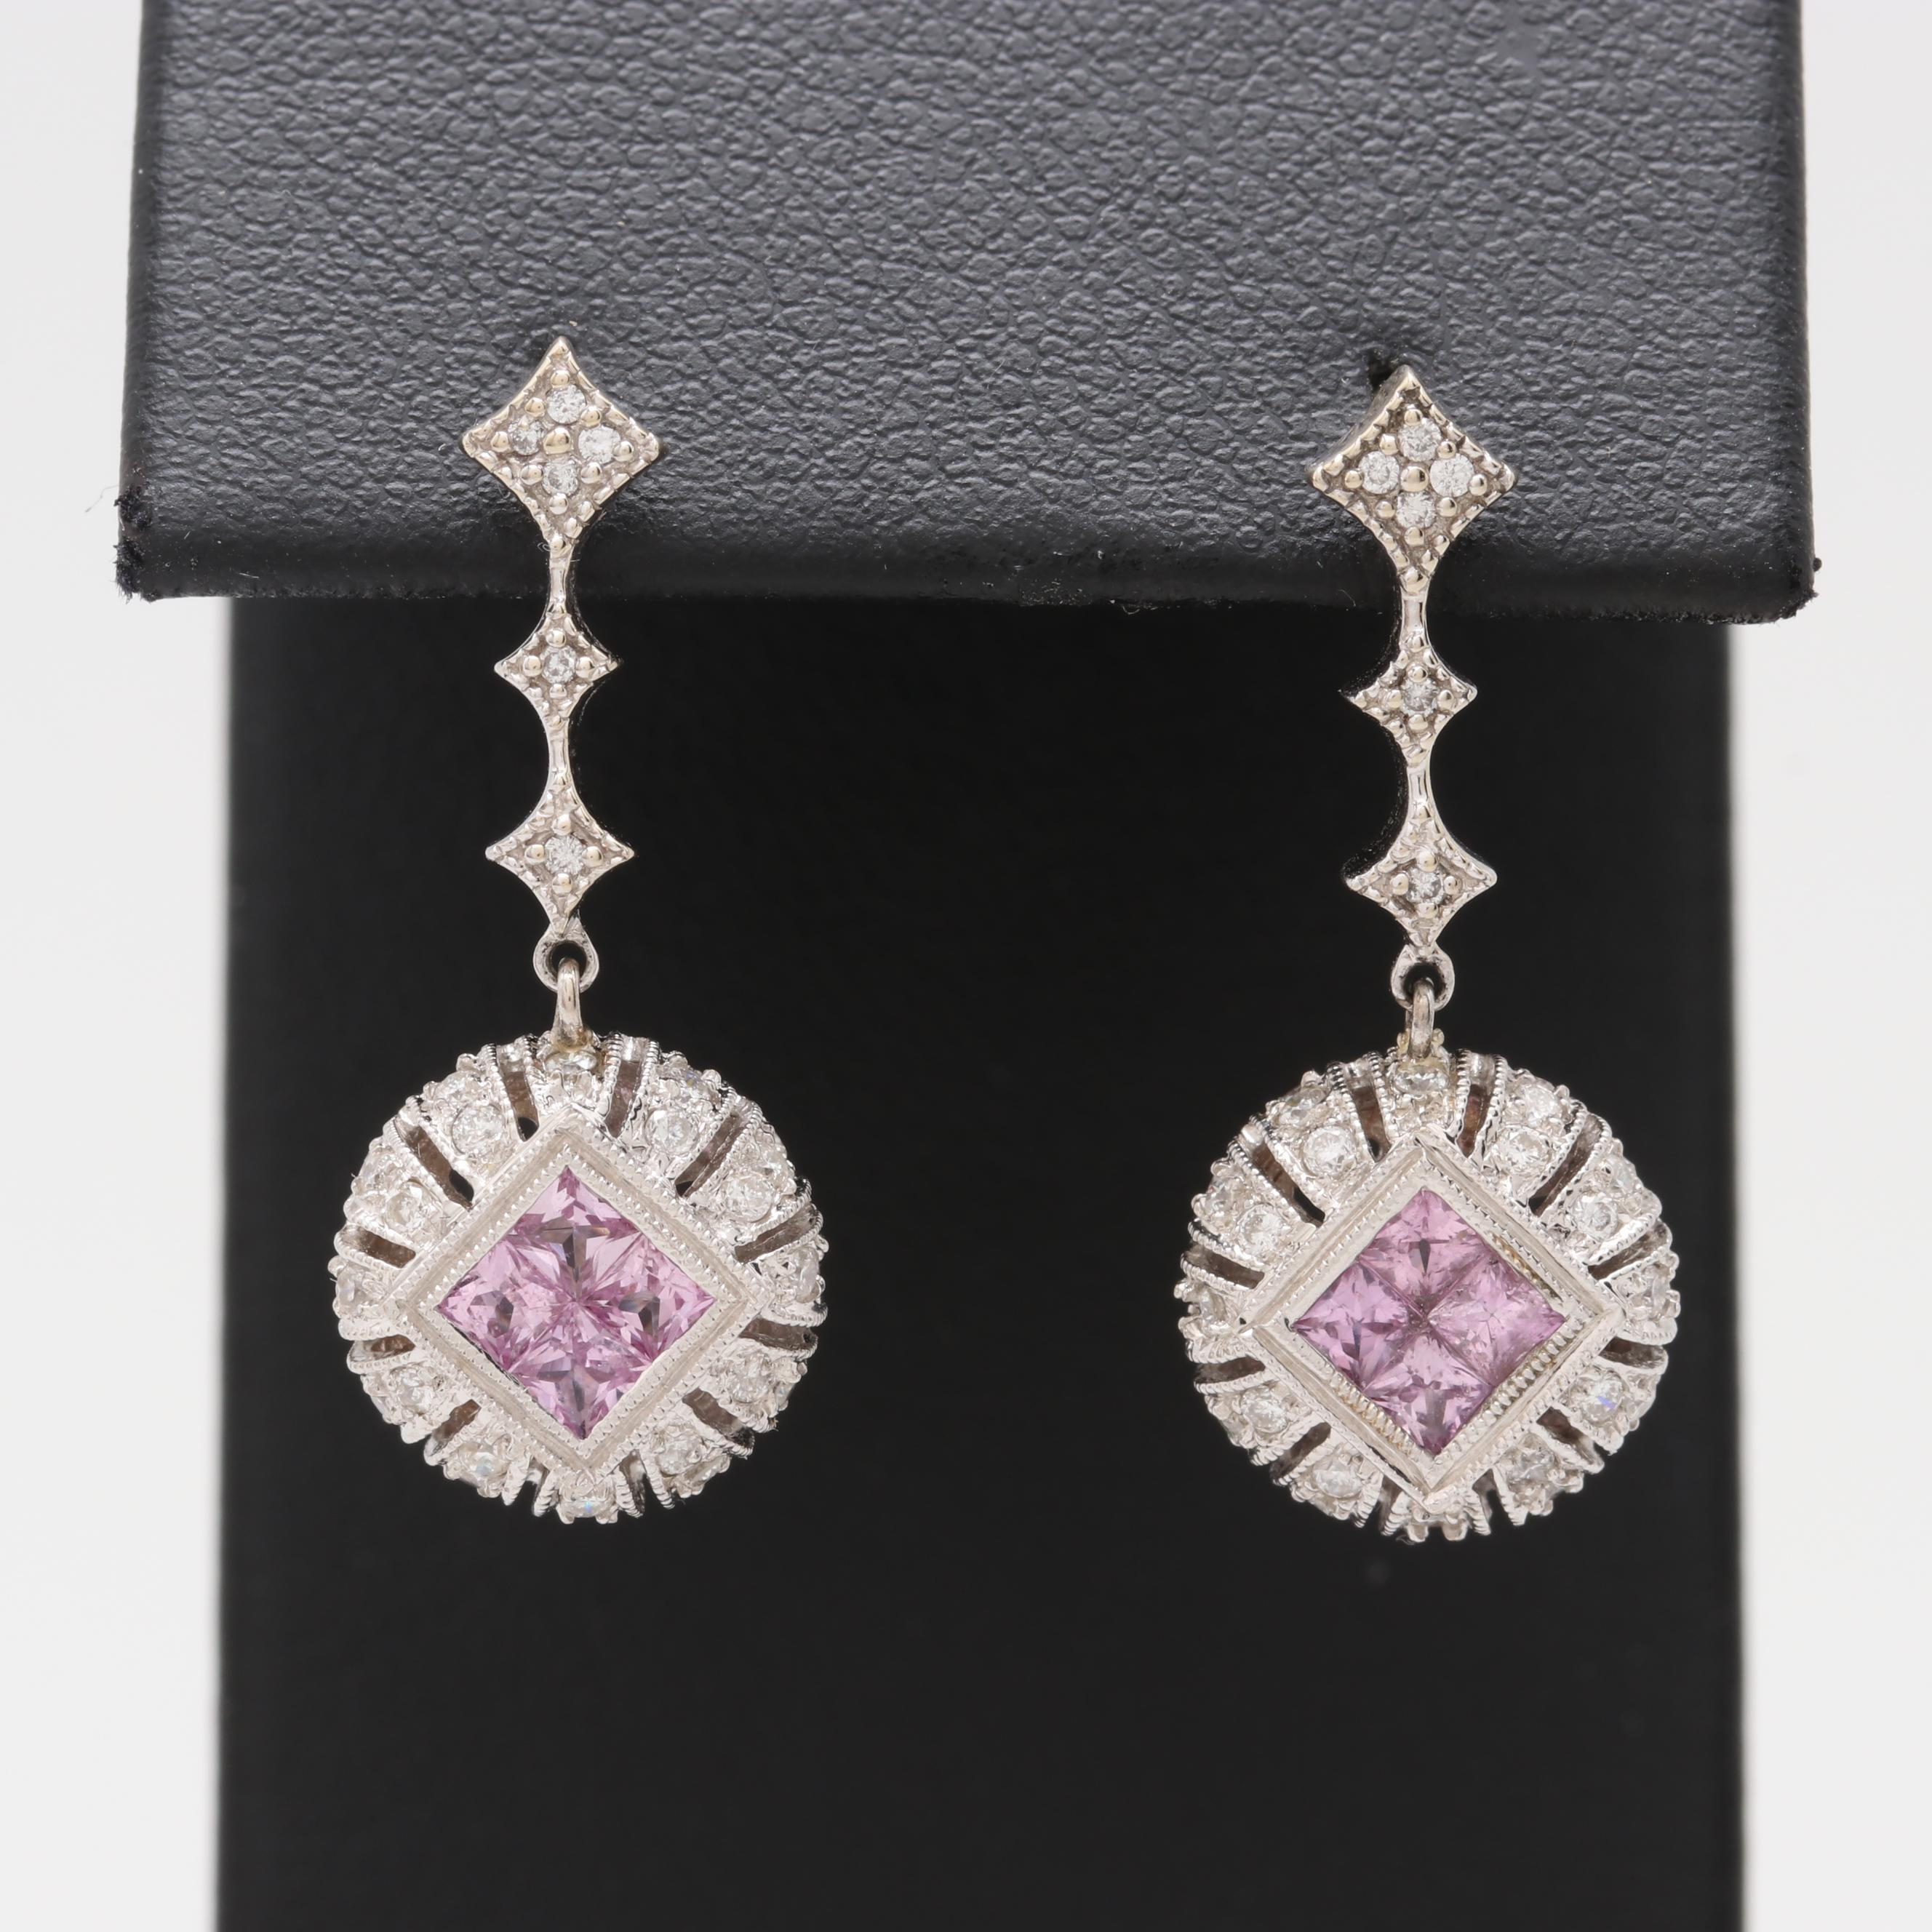 14K and 18K White Gold Diamond and Pink Sapphire Earrings